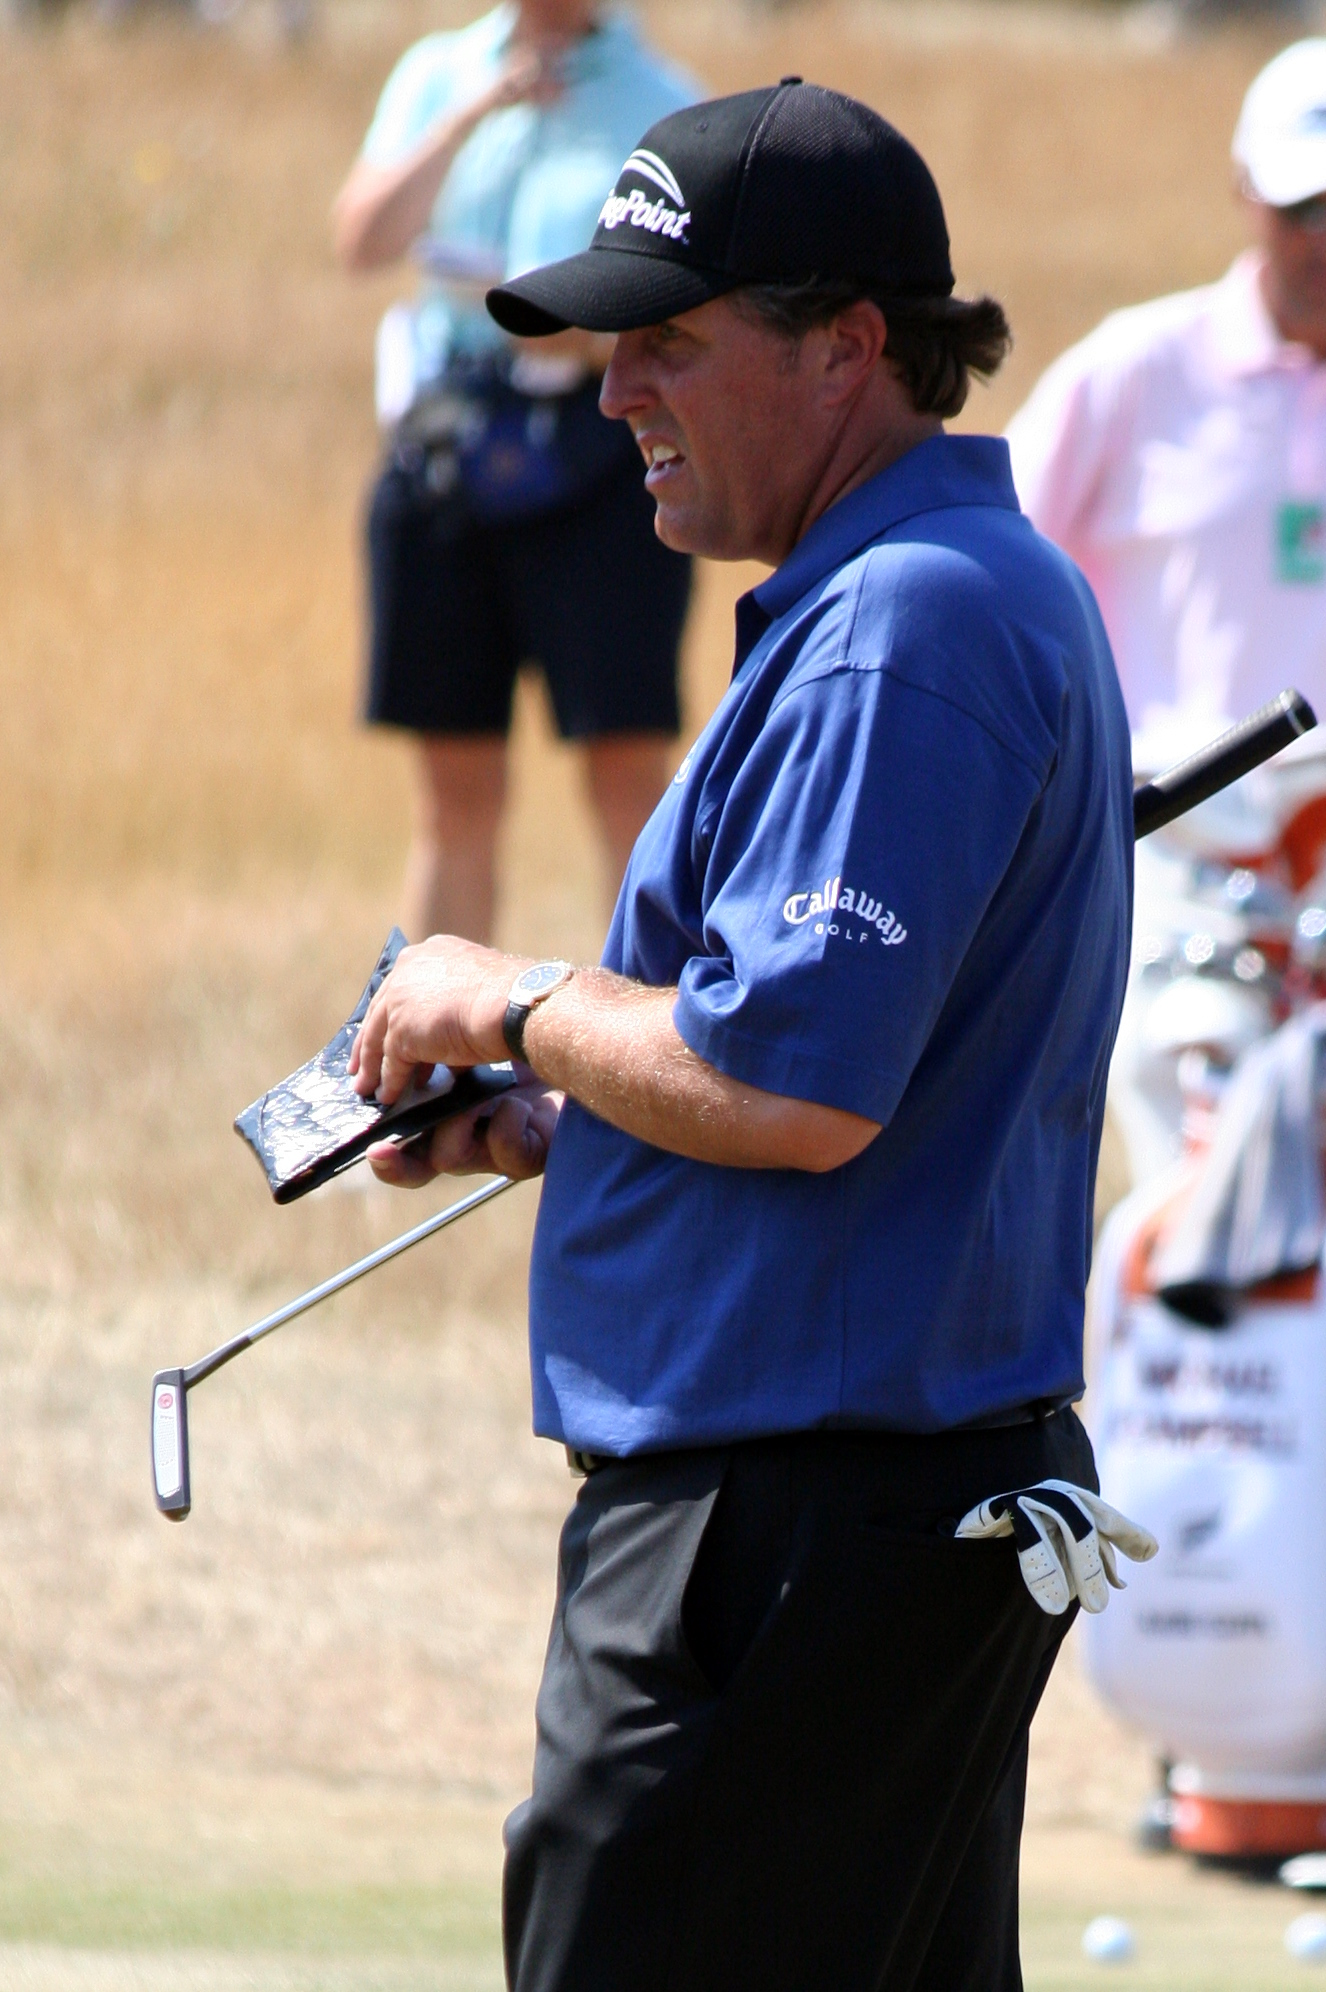 Phil Mickelson, Open 2006